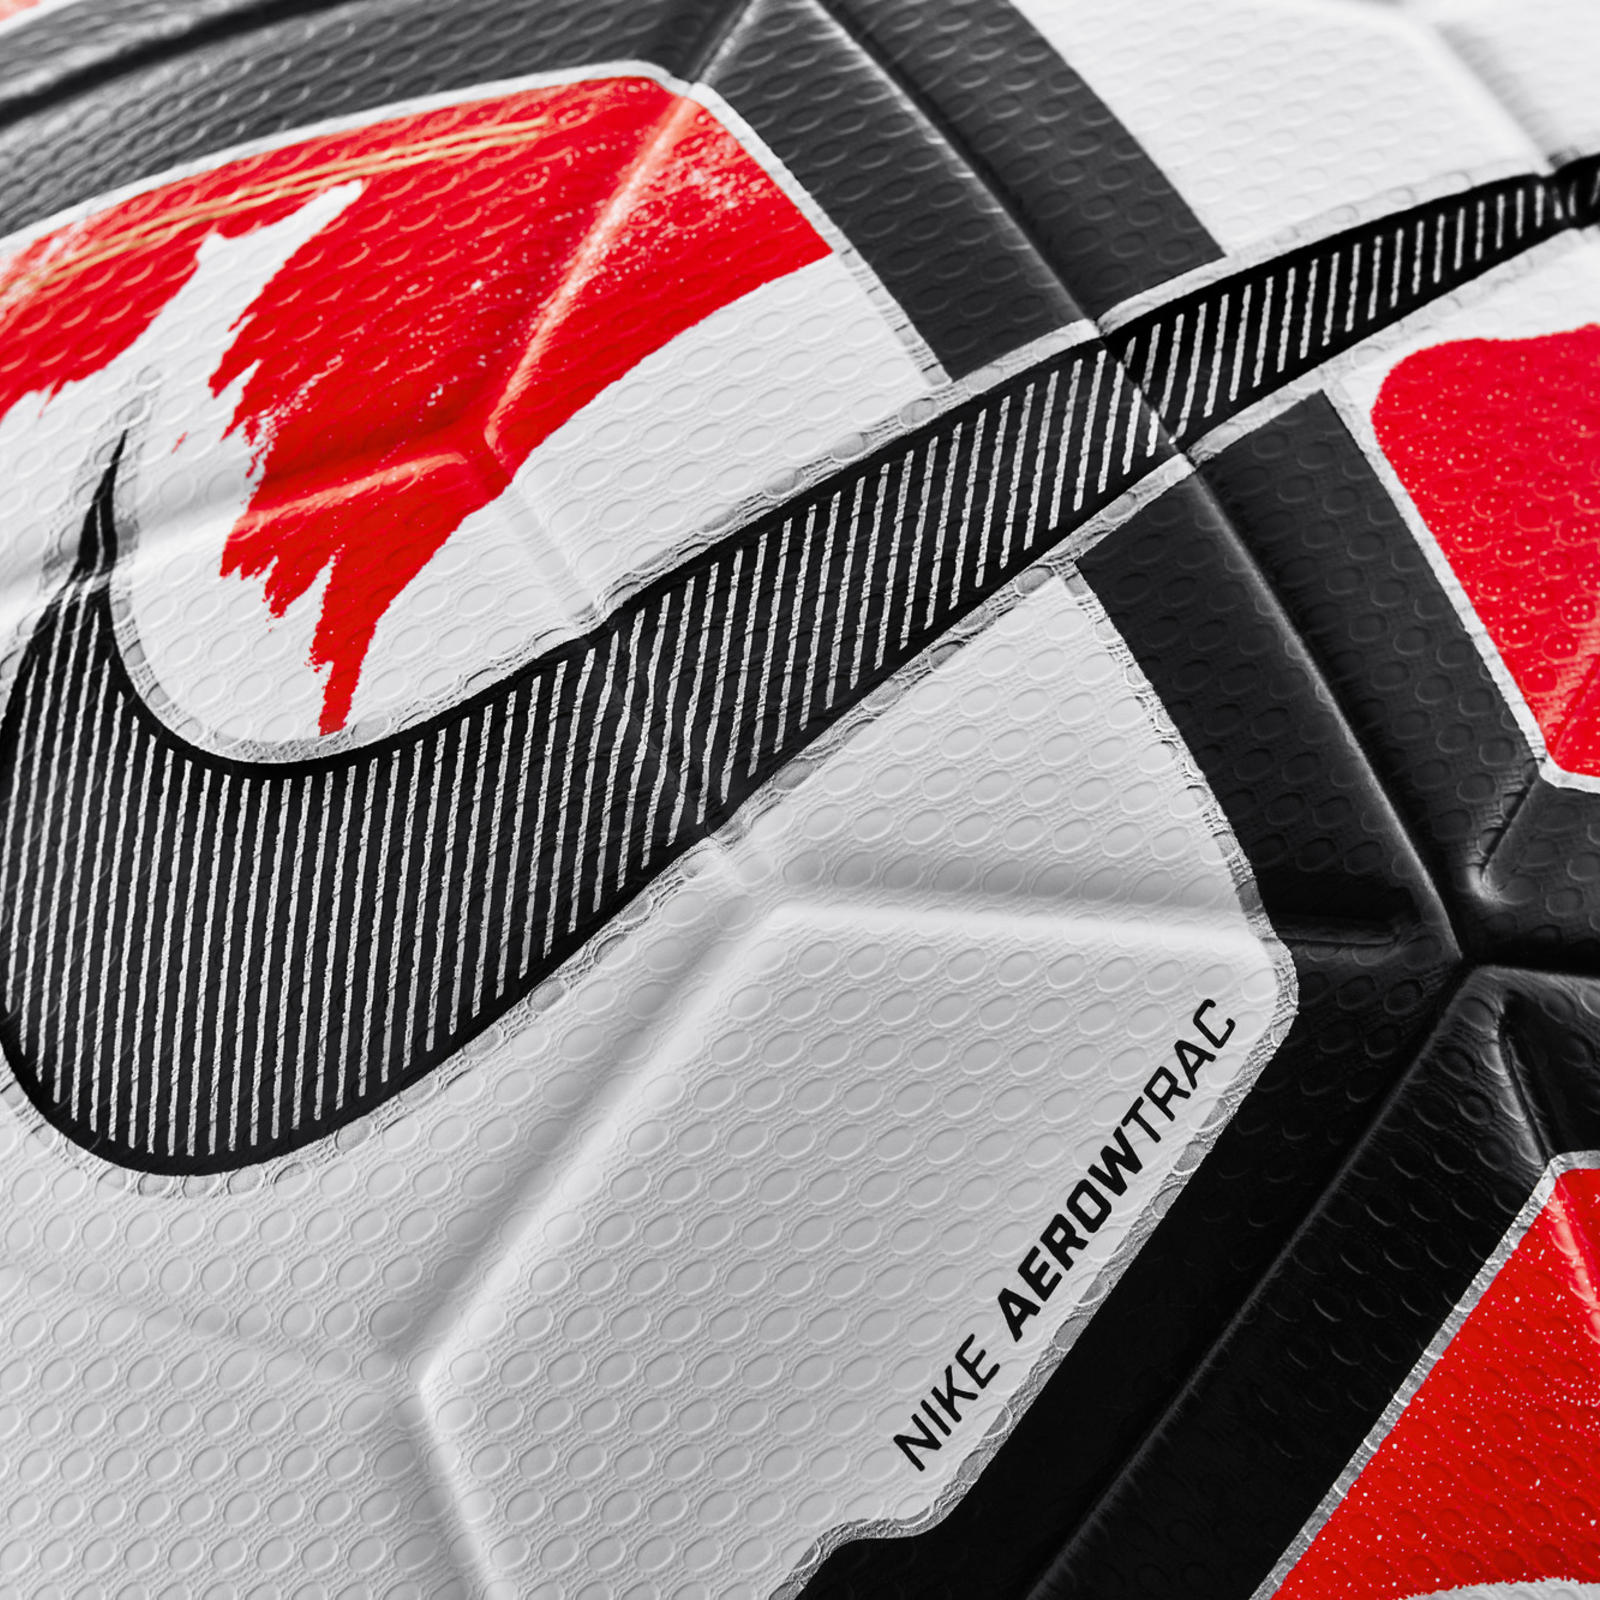 Ordem Ciento: The Official Match Ball of COPA America Centenario